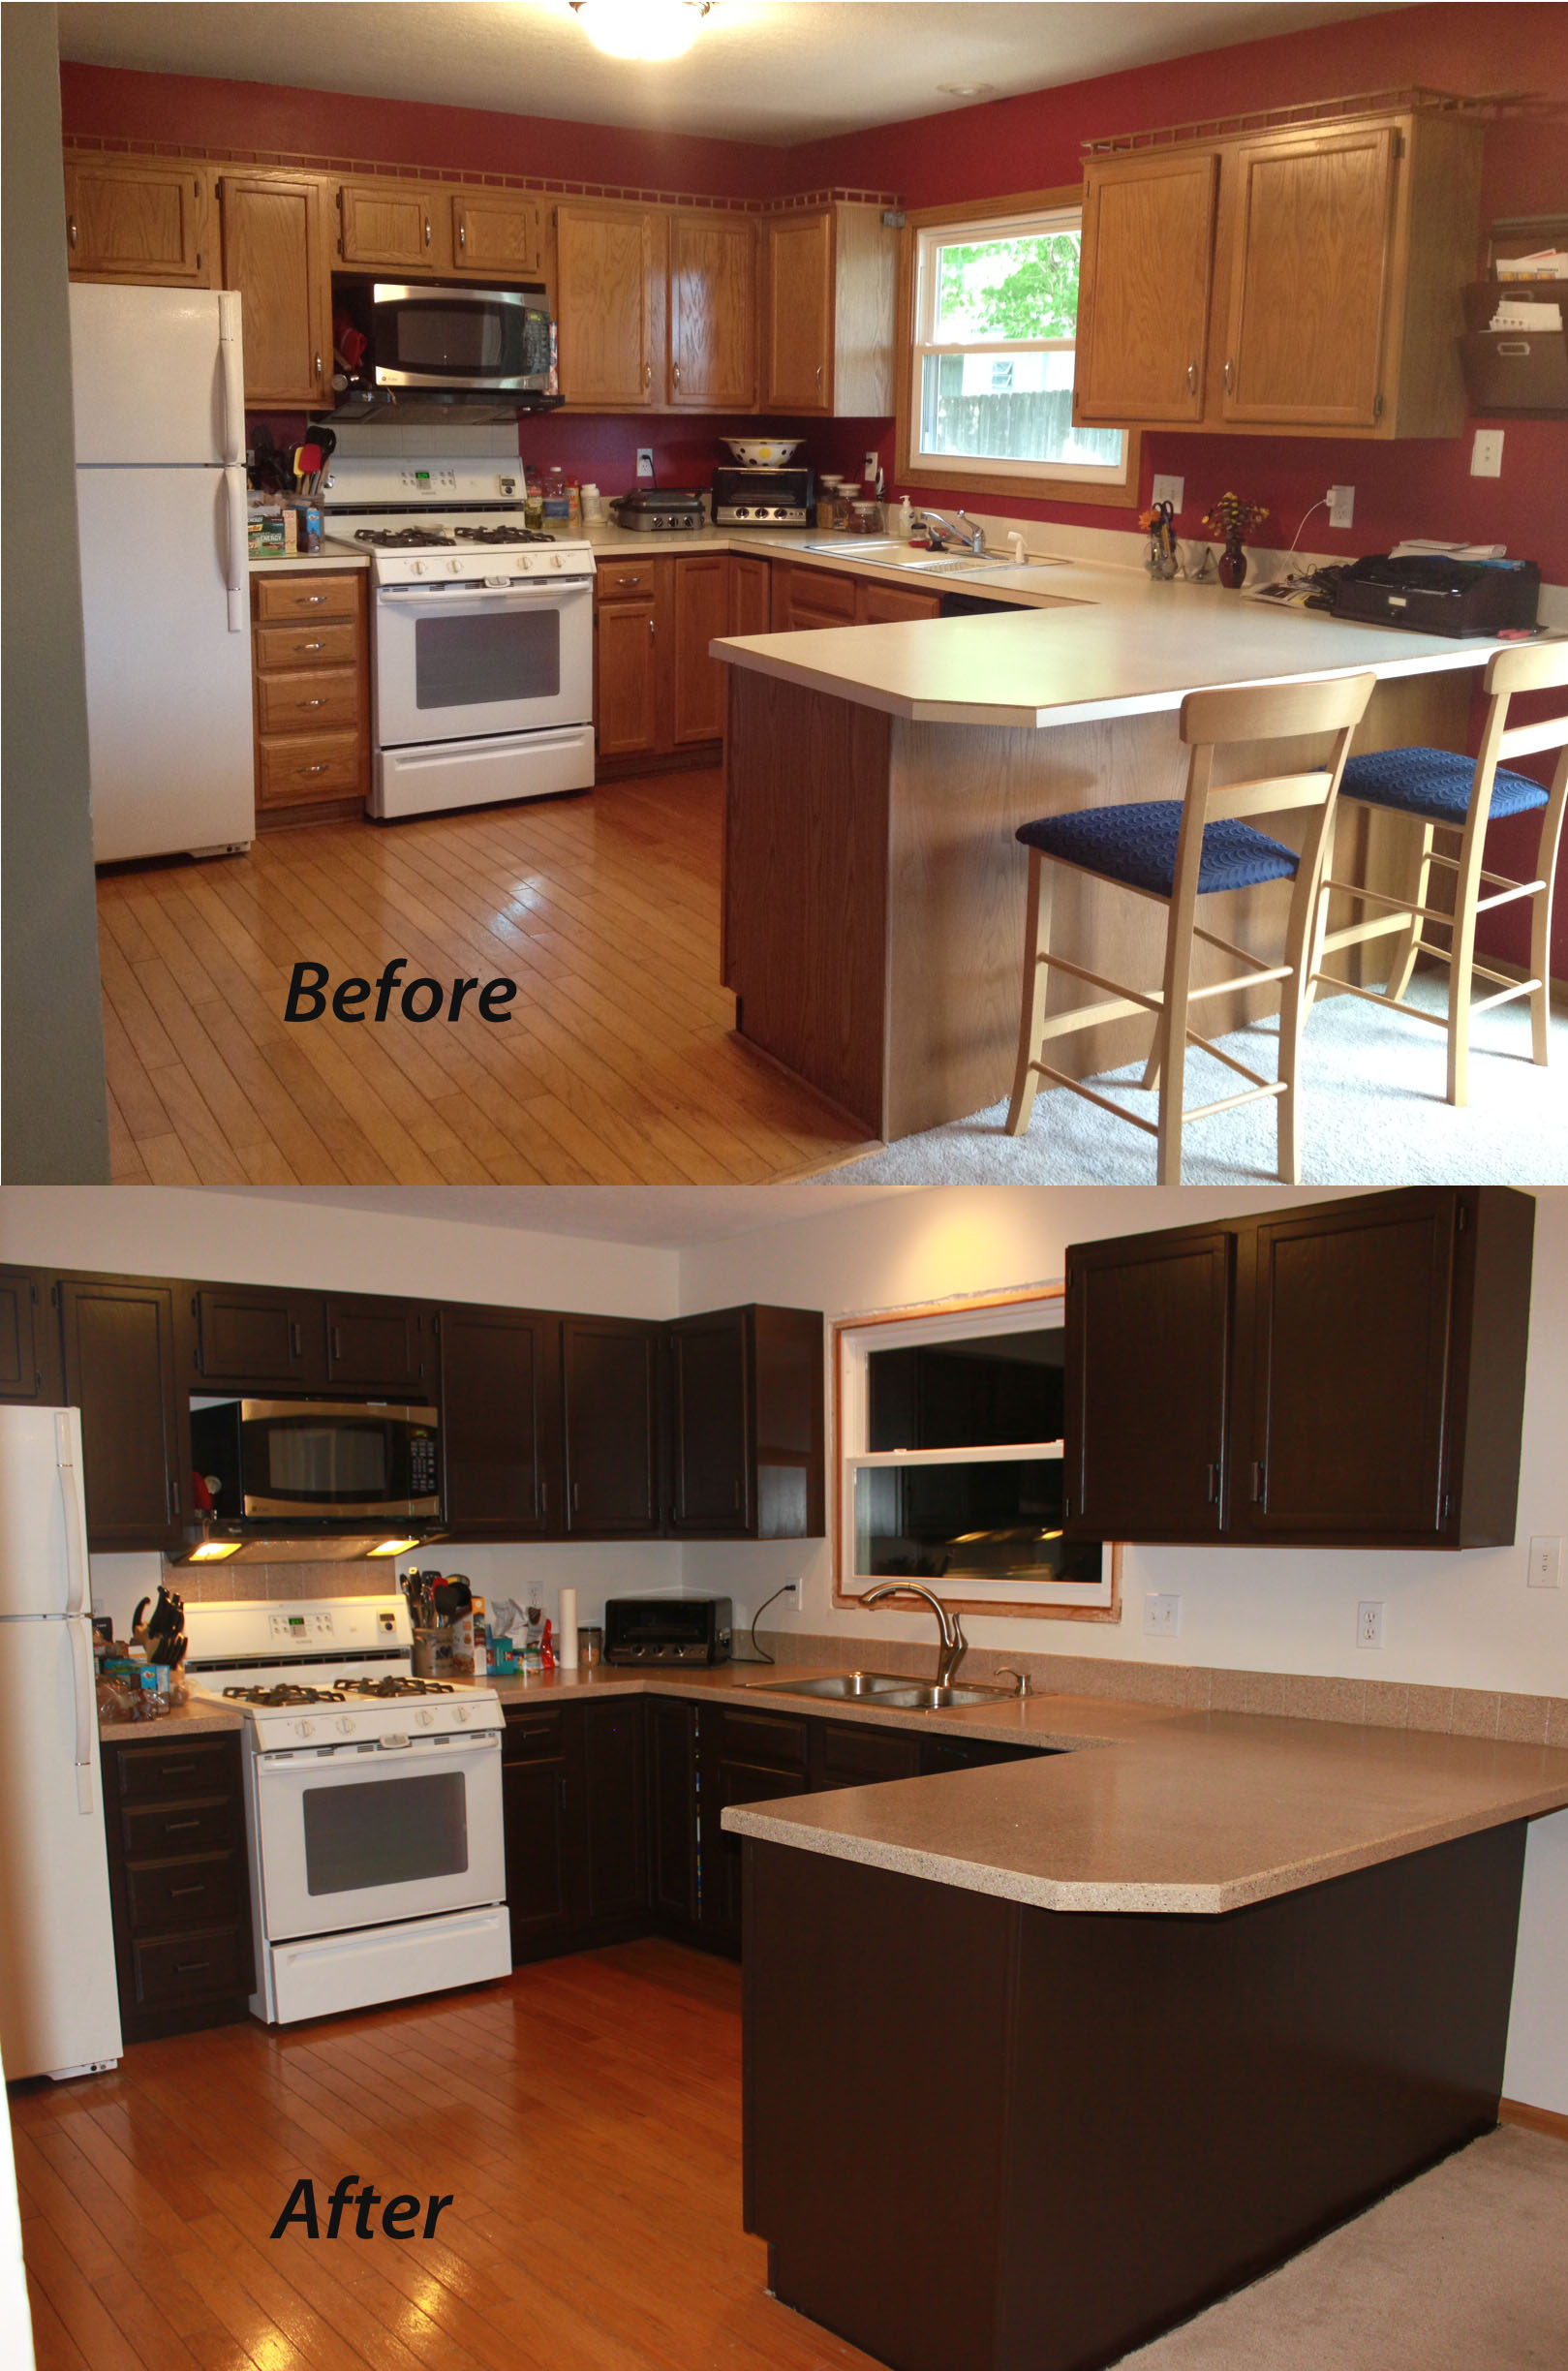 Painting kitchen cabinets sometimes homemade for Repainting white kitchen cabinets